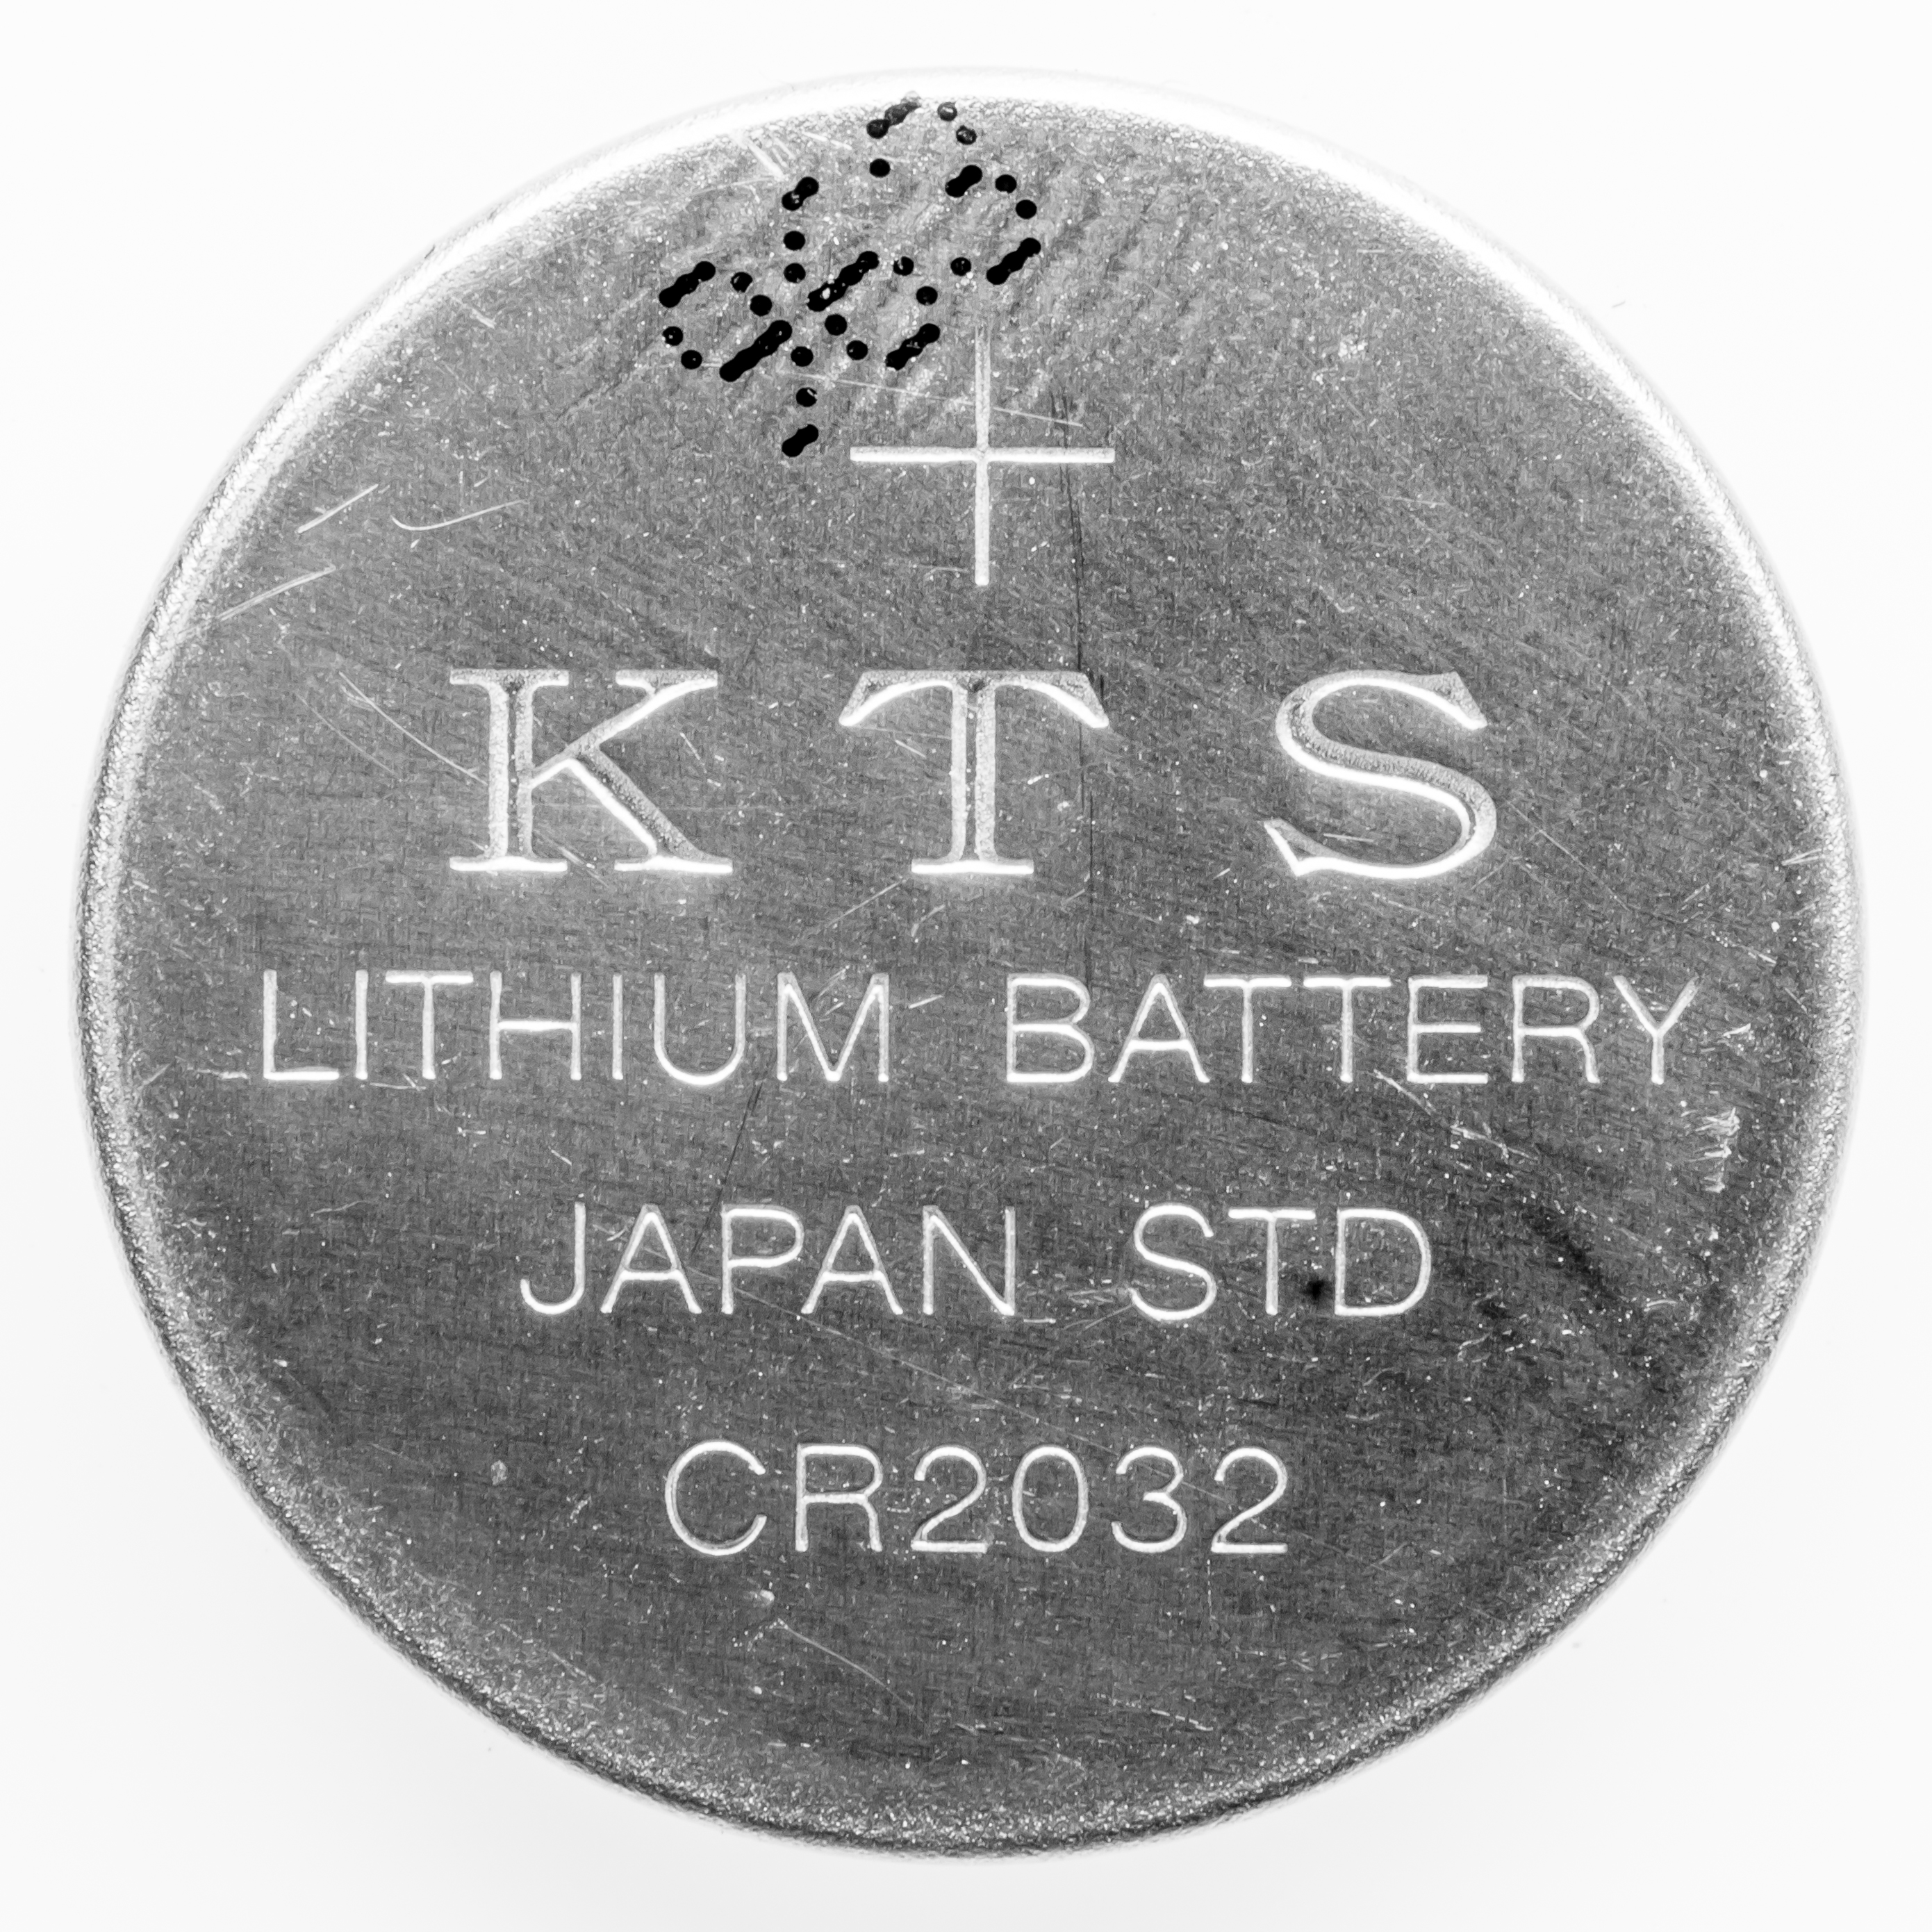 Cr2032 Lithium Battery File Cr2032 Battery Kts 2728 Jpg Wikimedia Commons